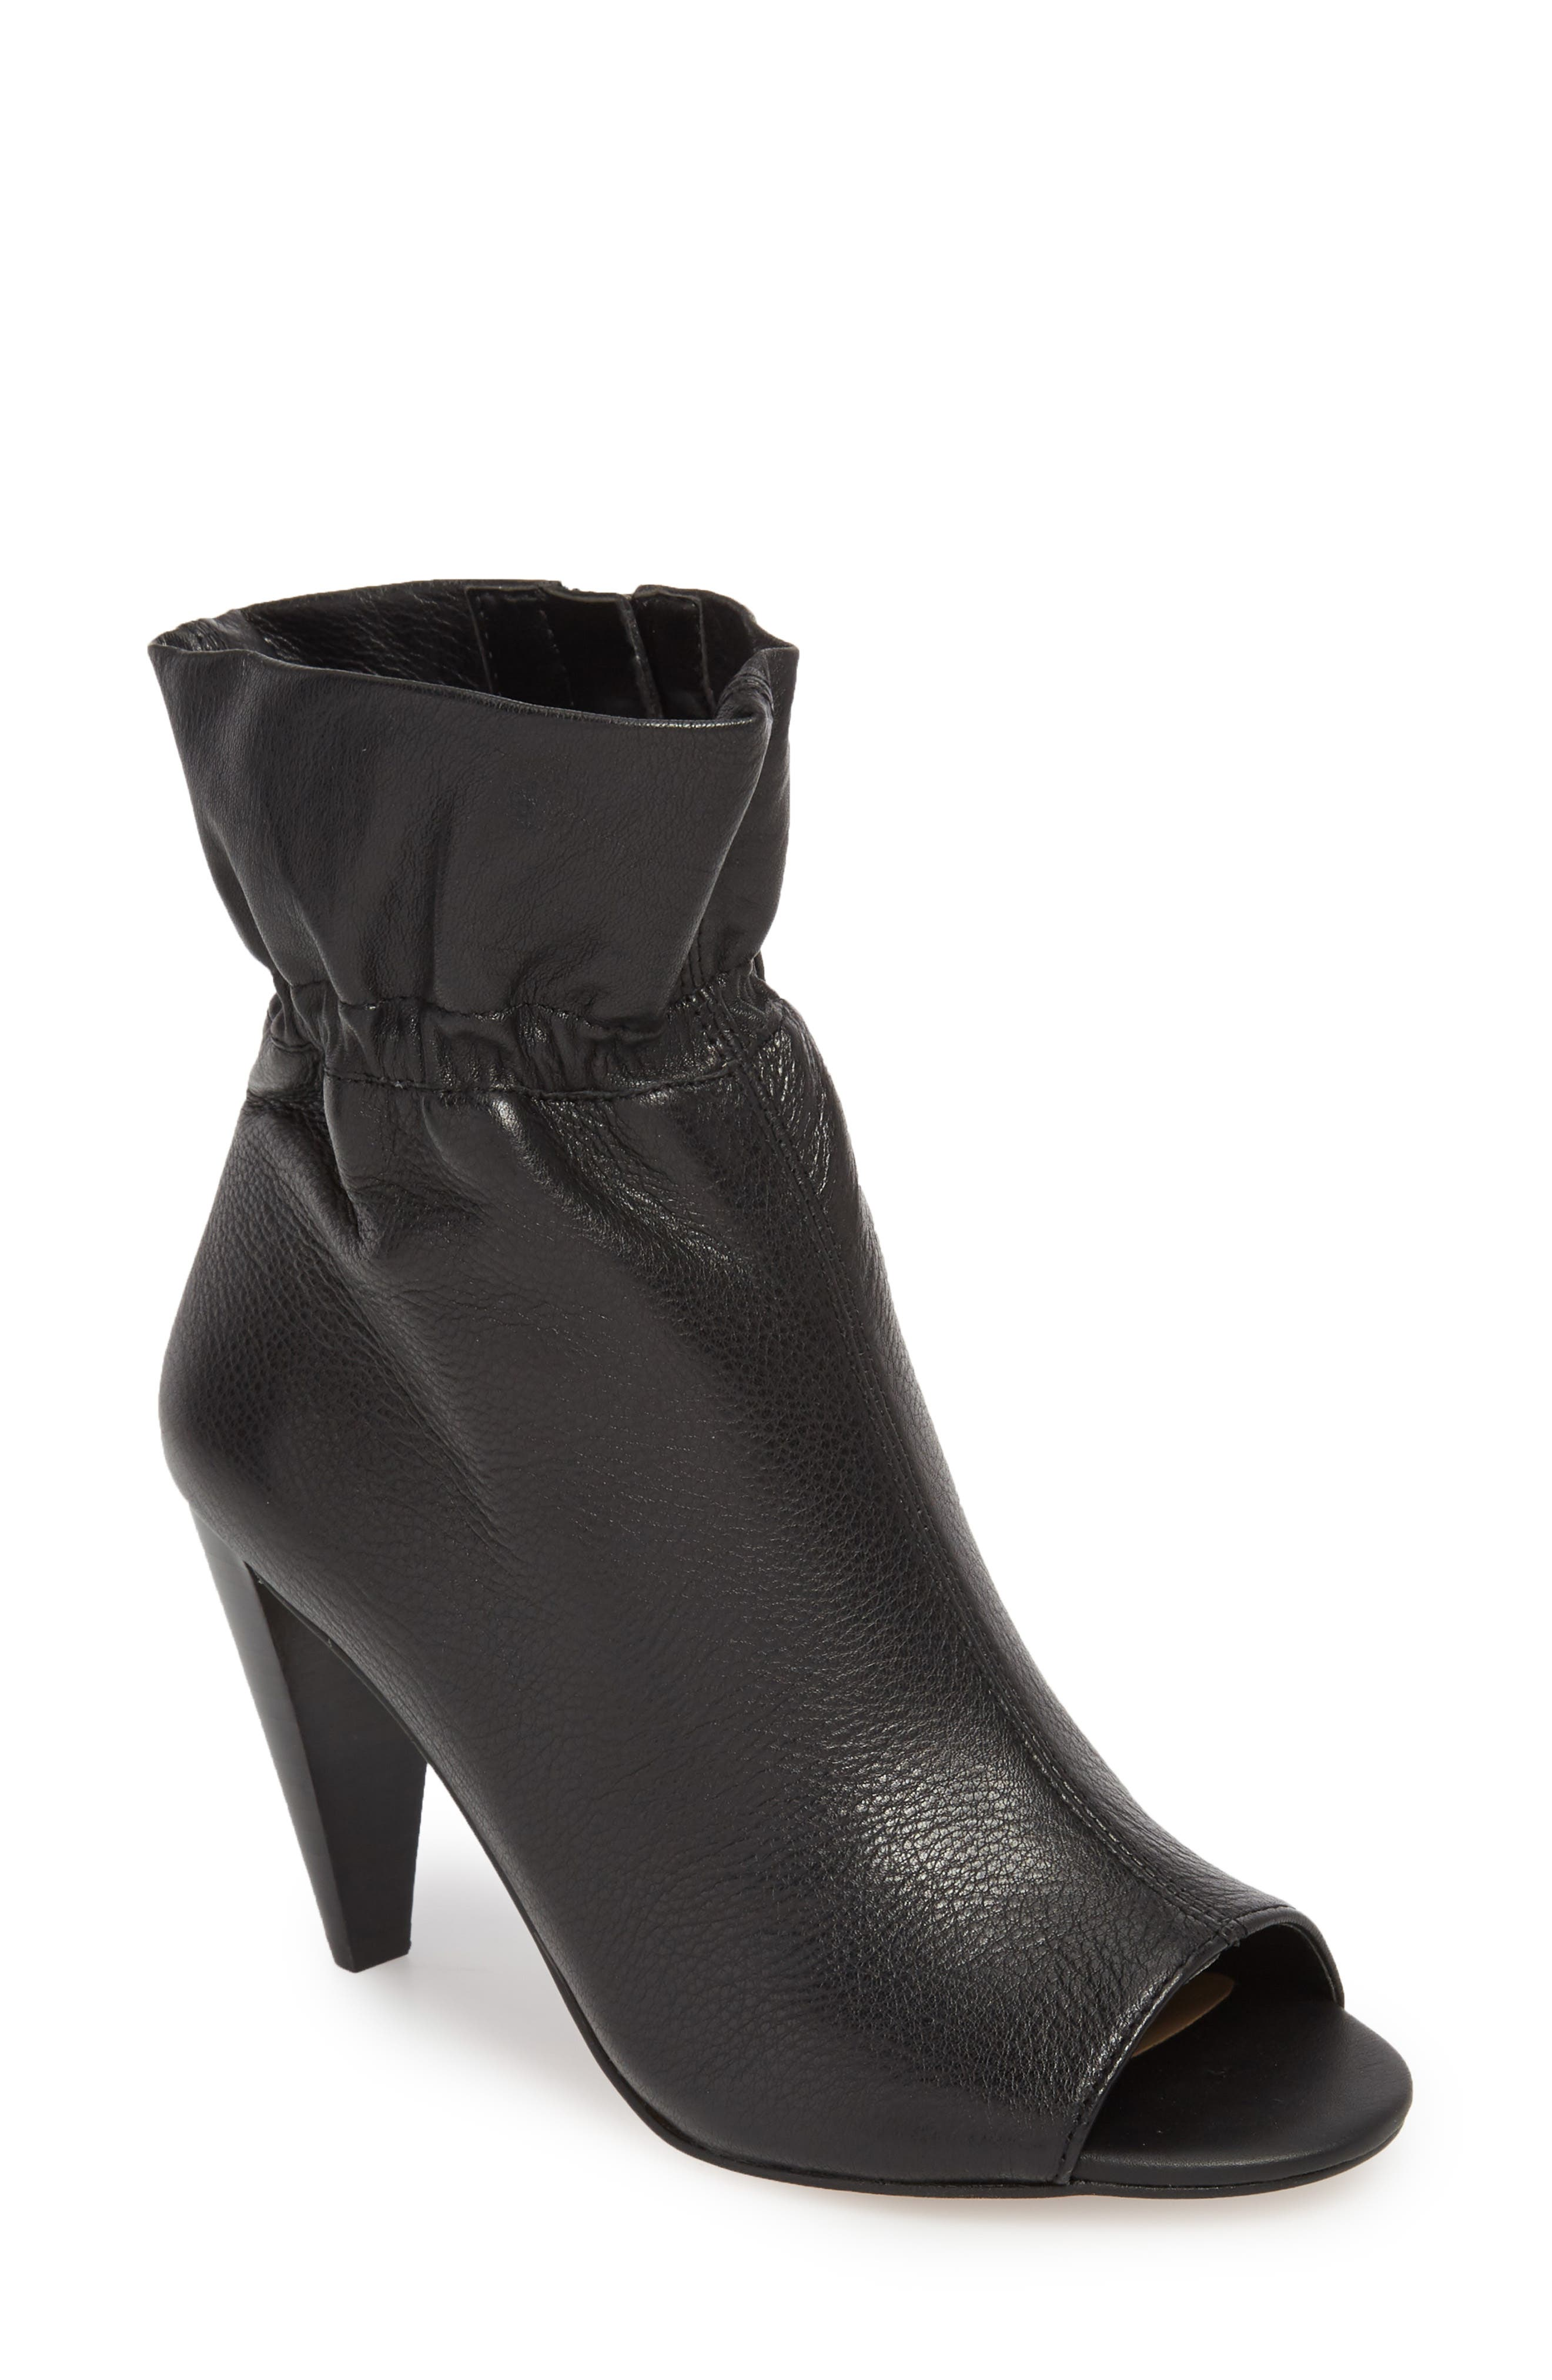 Addiena Bootie,                             Main thumbnail 1, color,                             BLACK LEATHER